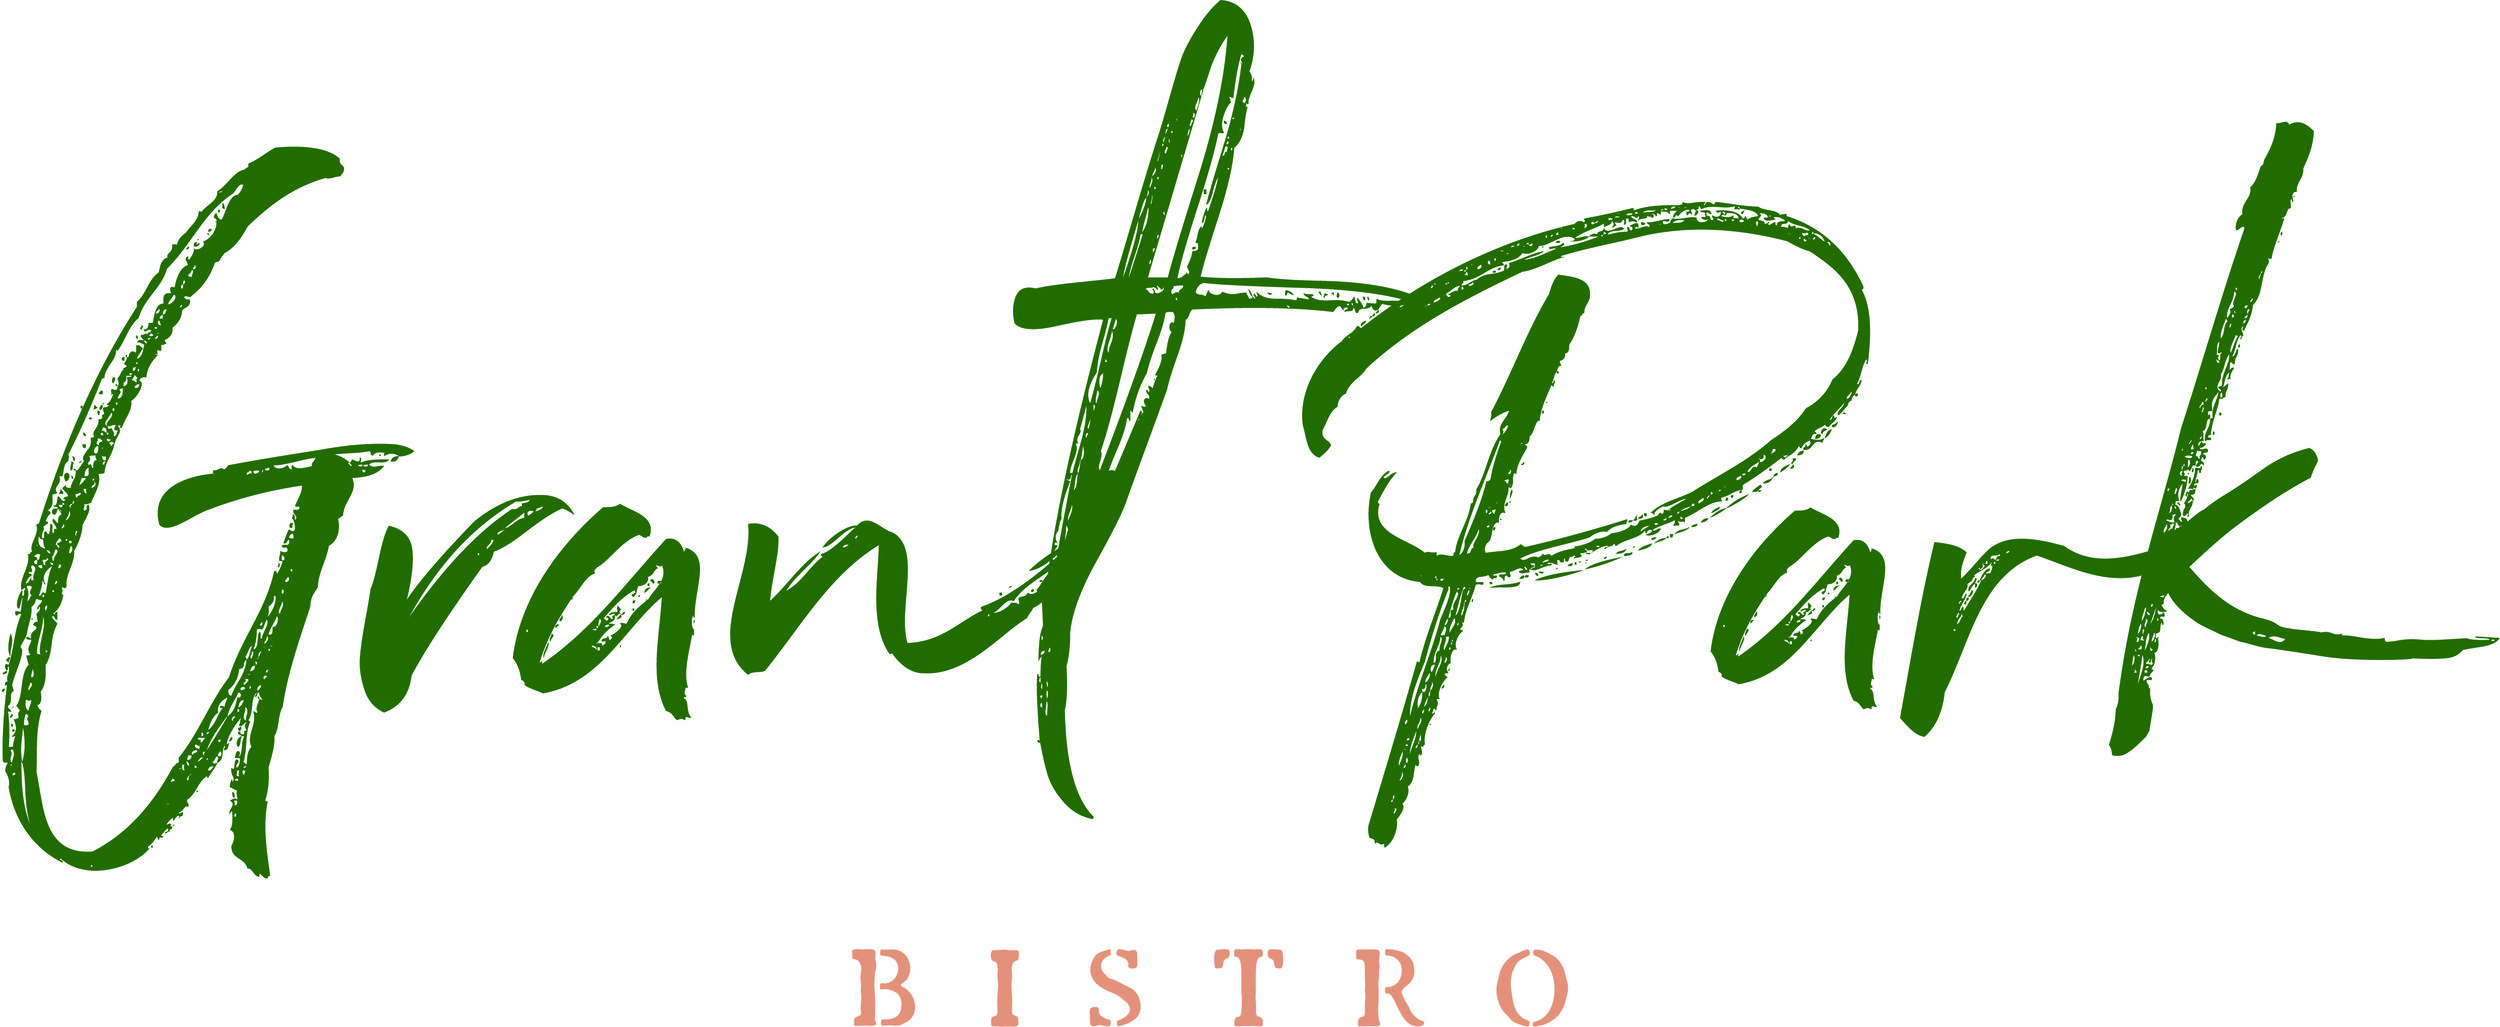 Grant Park Bistro - Type Only - Horizontal - HiRes.jpg